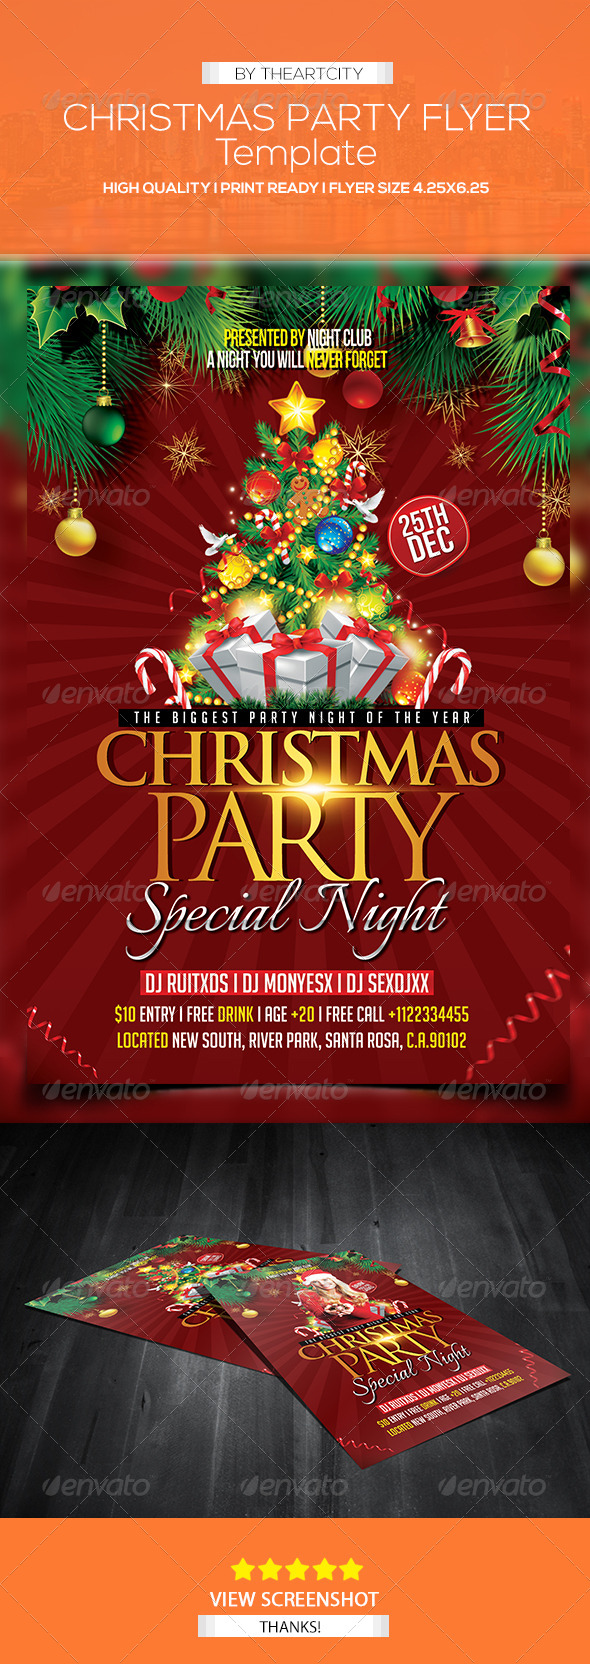 GraphicRiver Christmas Party Flyer 5980271